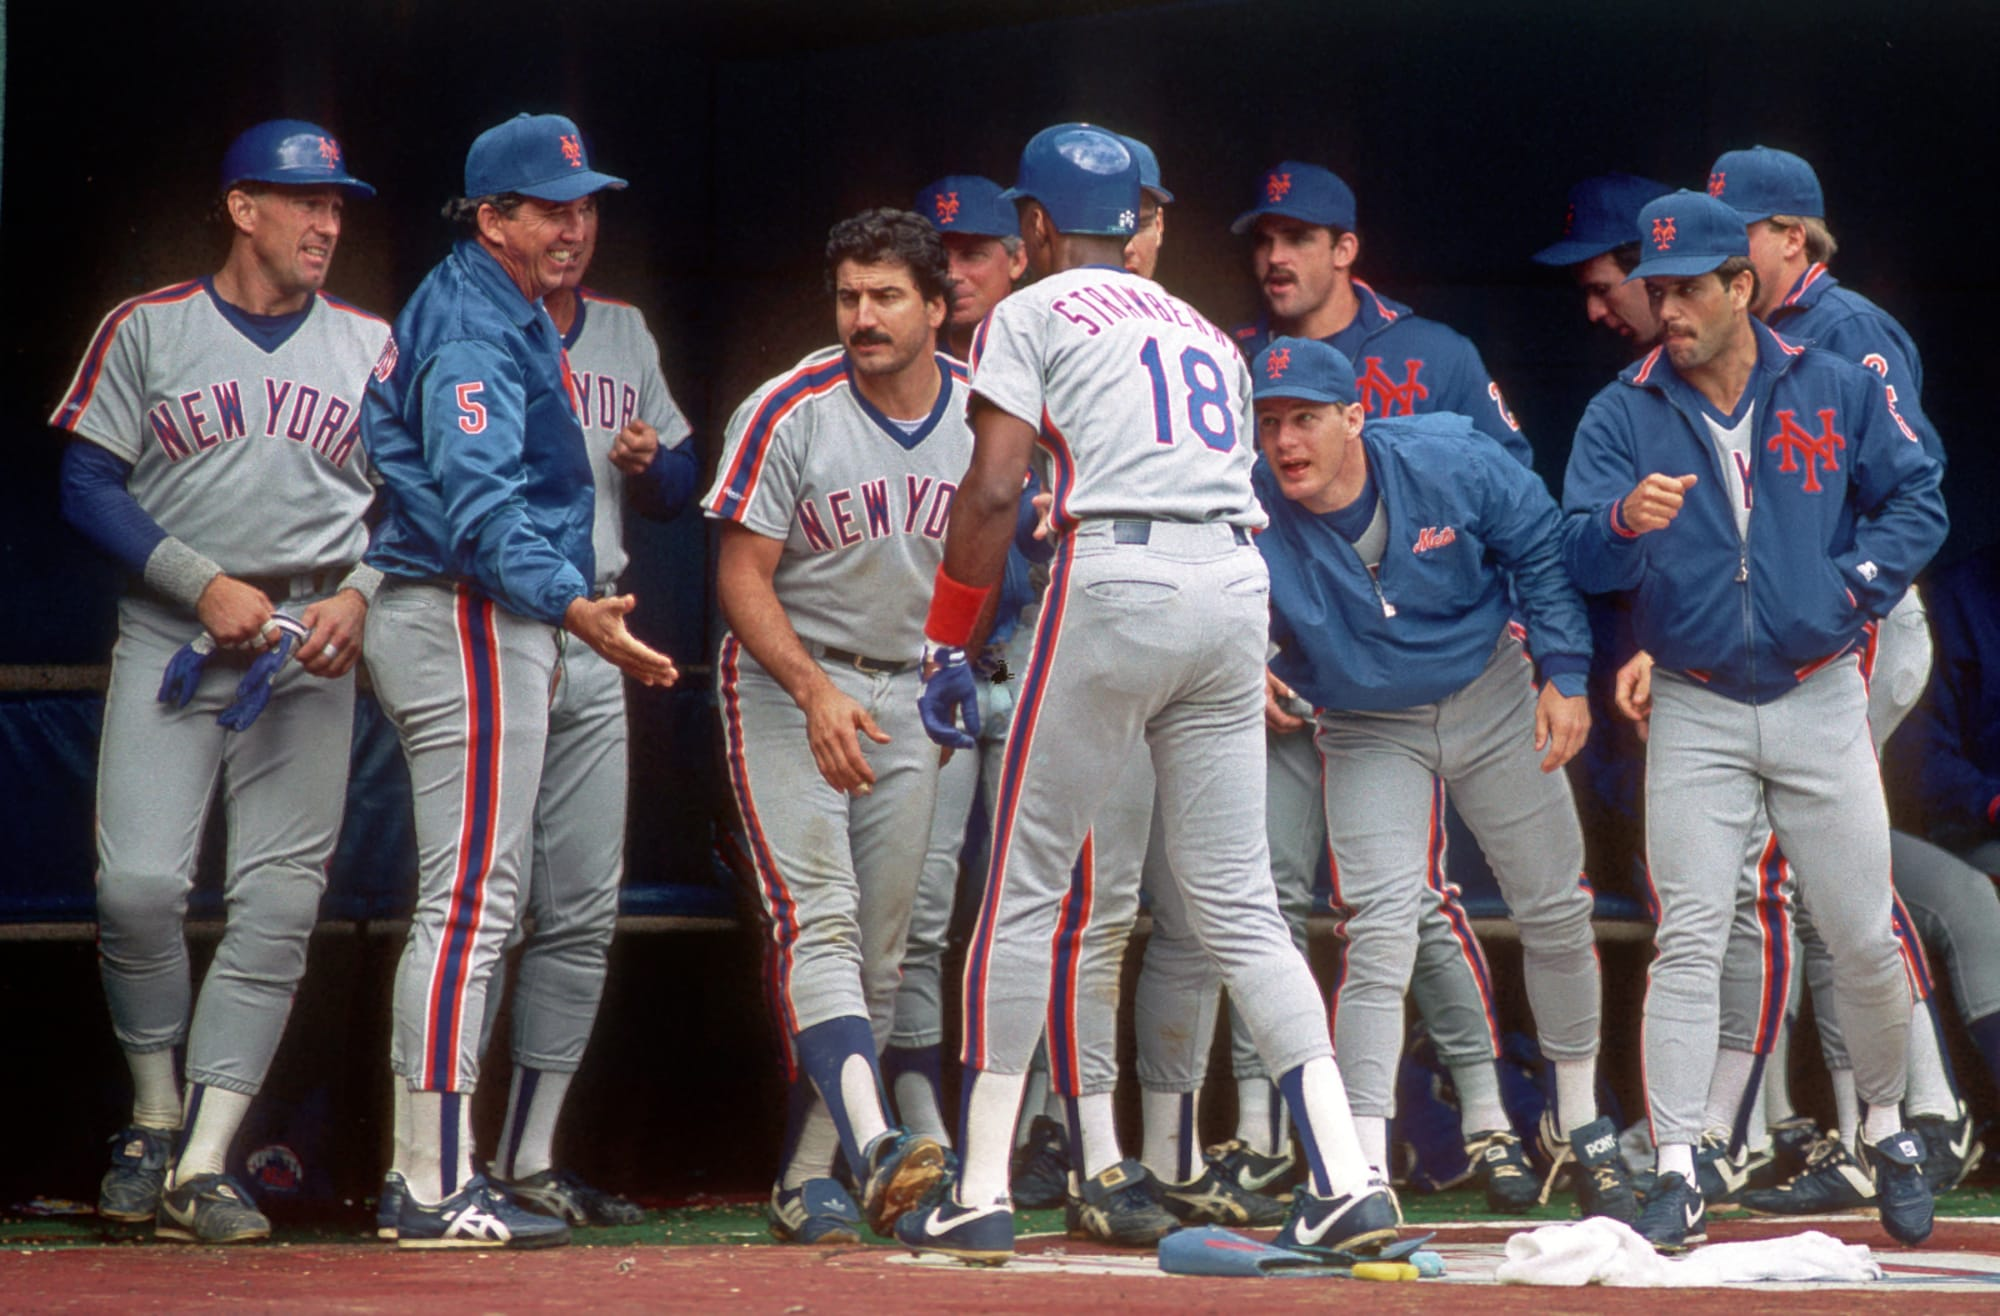 New York Mets exclusive 30-30 club started with a bang in 1987